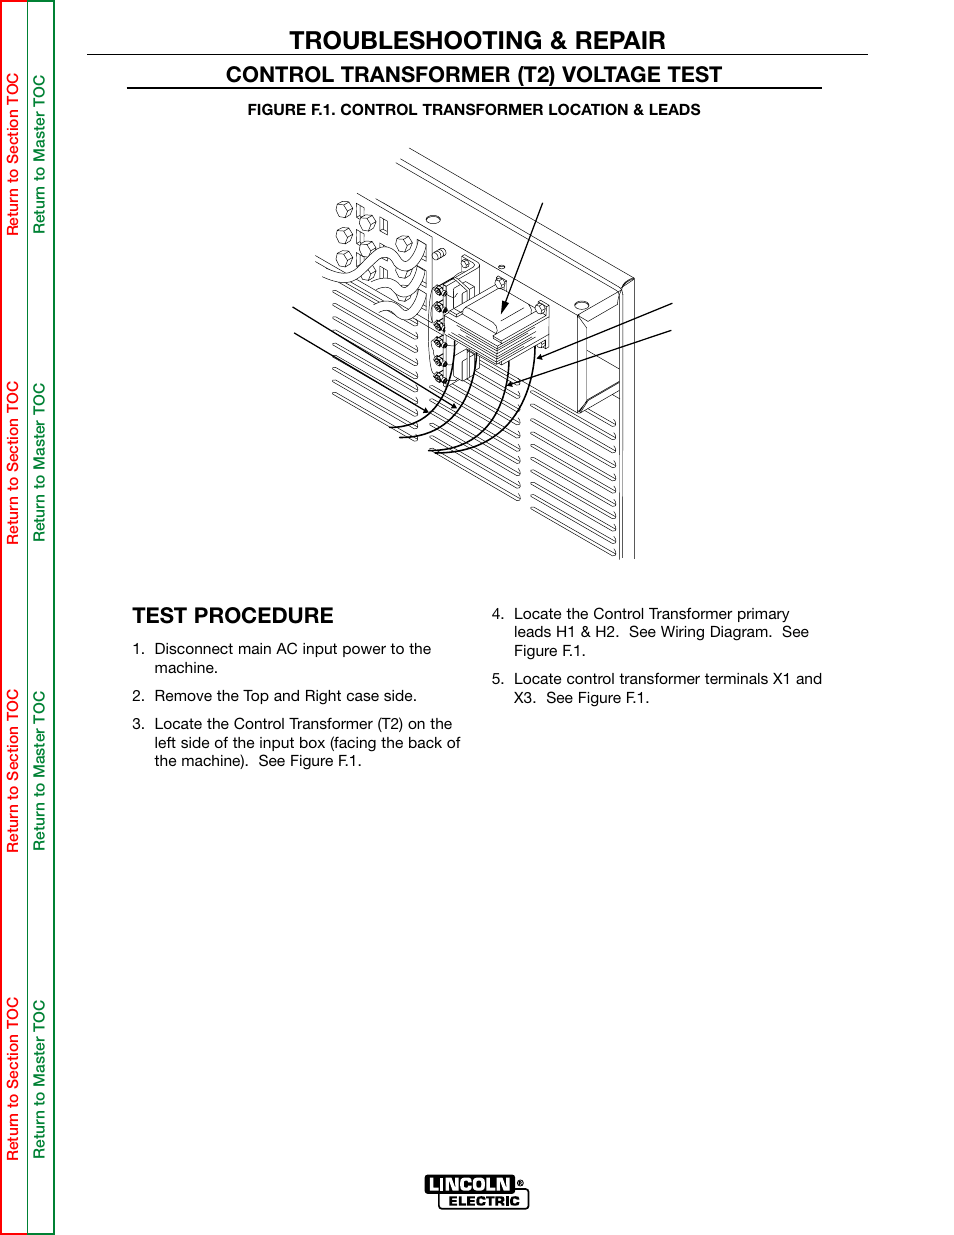 medium resolution of troubleshooting repair test procedure control transformer t2 voltage test lincoln electric multi source svm155 a user manual page 38 96